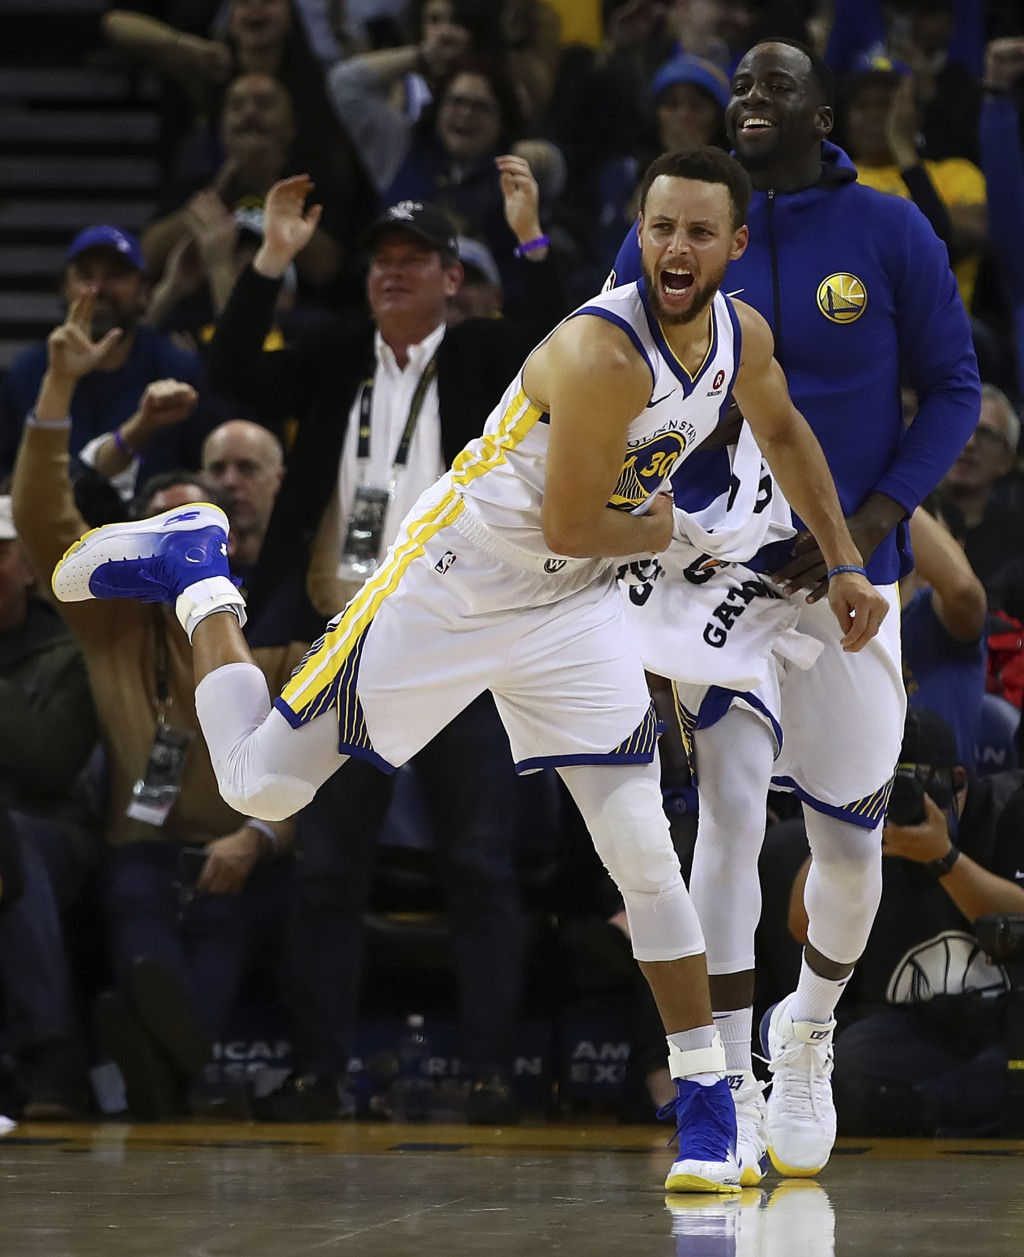 Golden State Warriors' Stephen Curry (30) and Draymond Green celebrate a score against the Denver Nuggets during the second half of an NBA basketball